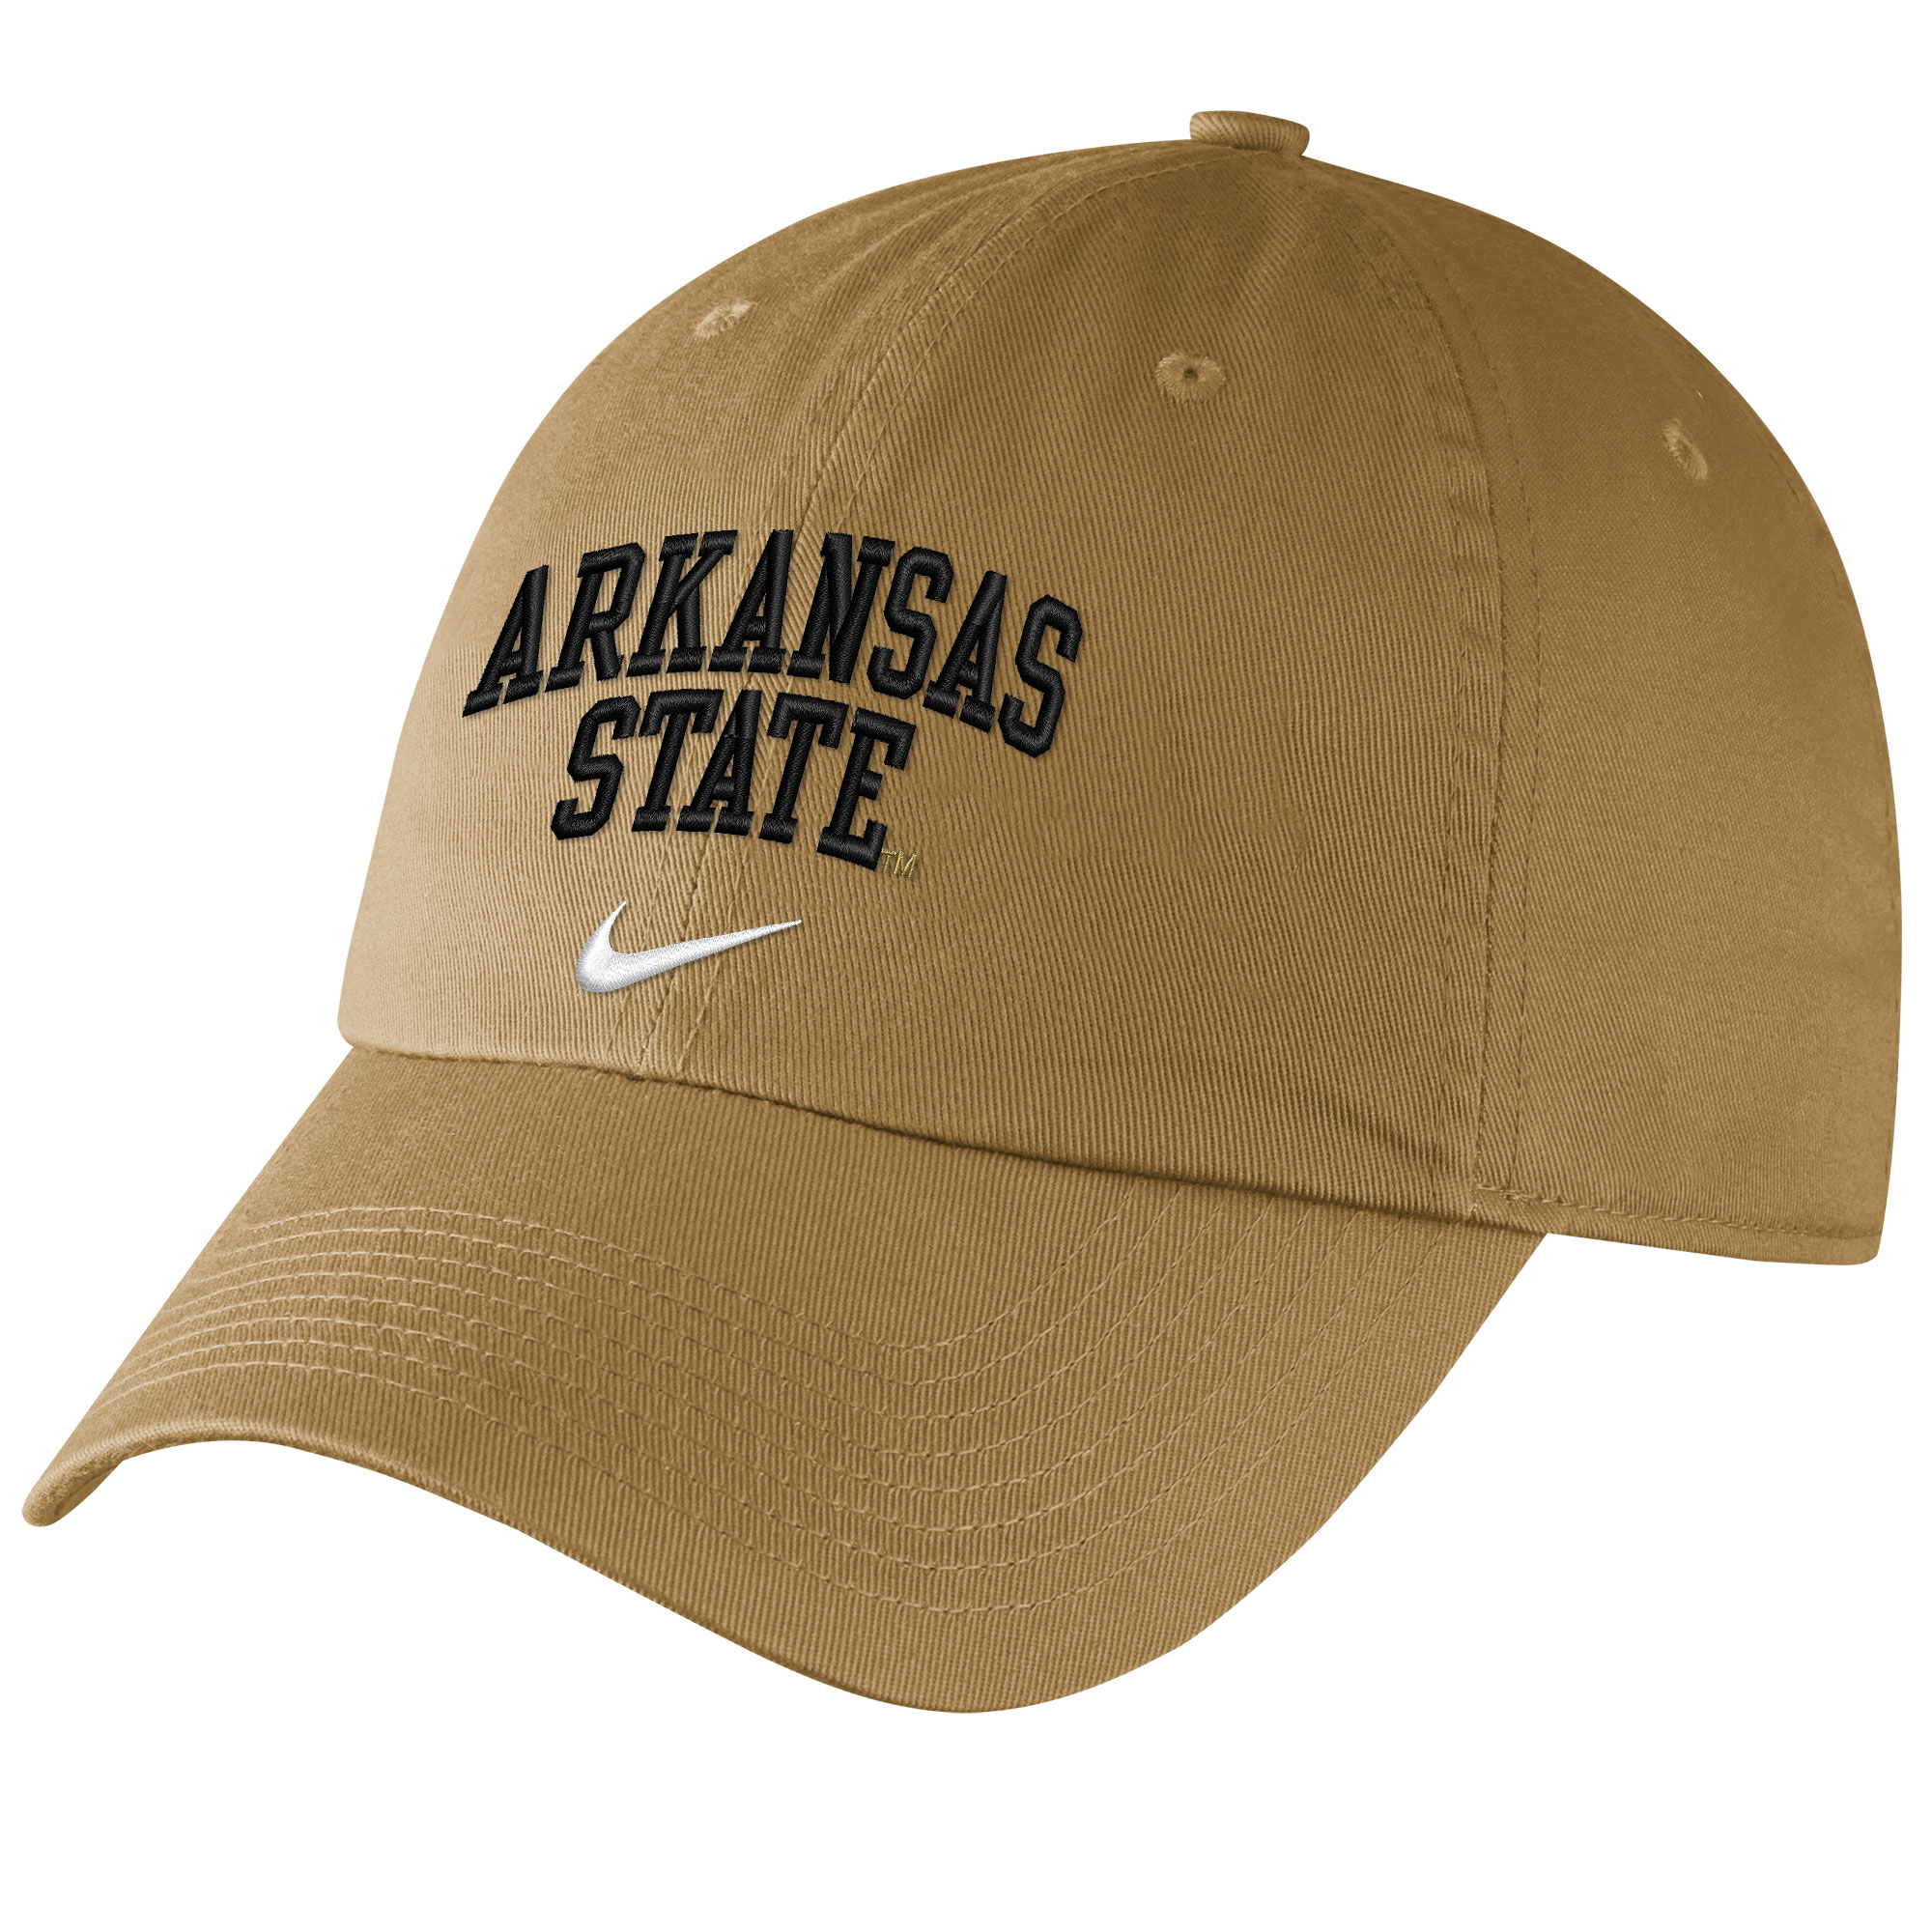 Arkansas State Campus Hat